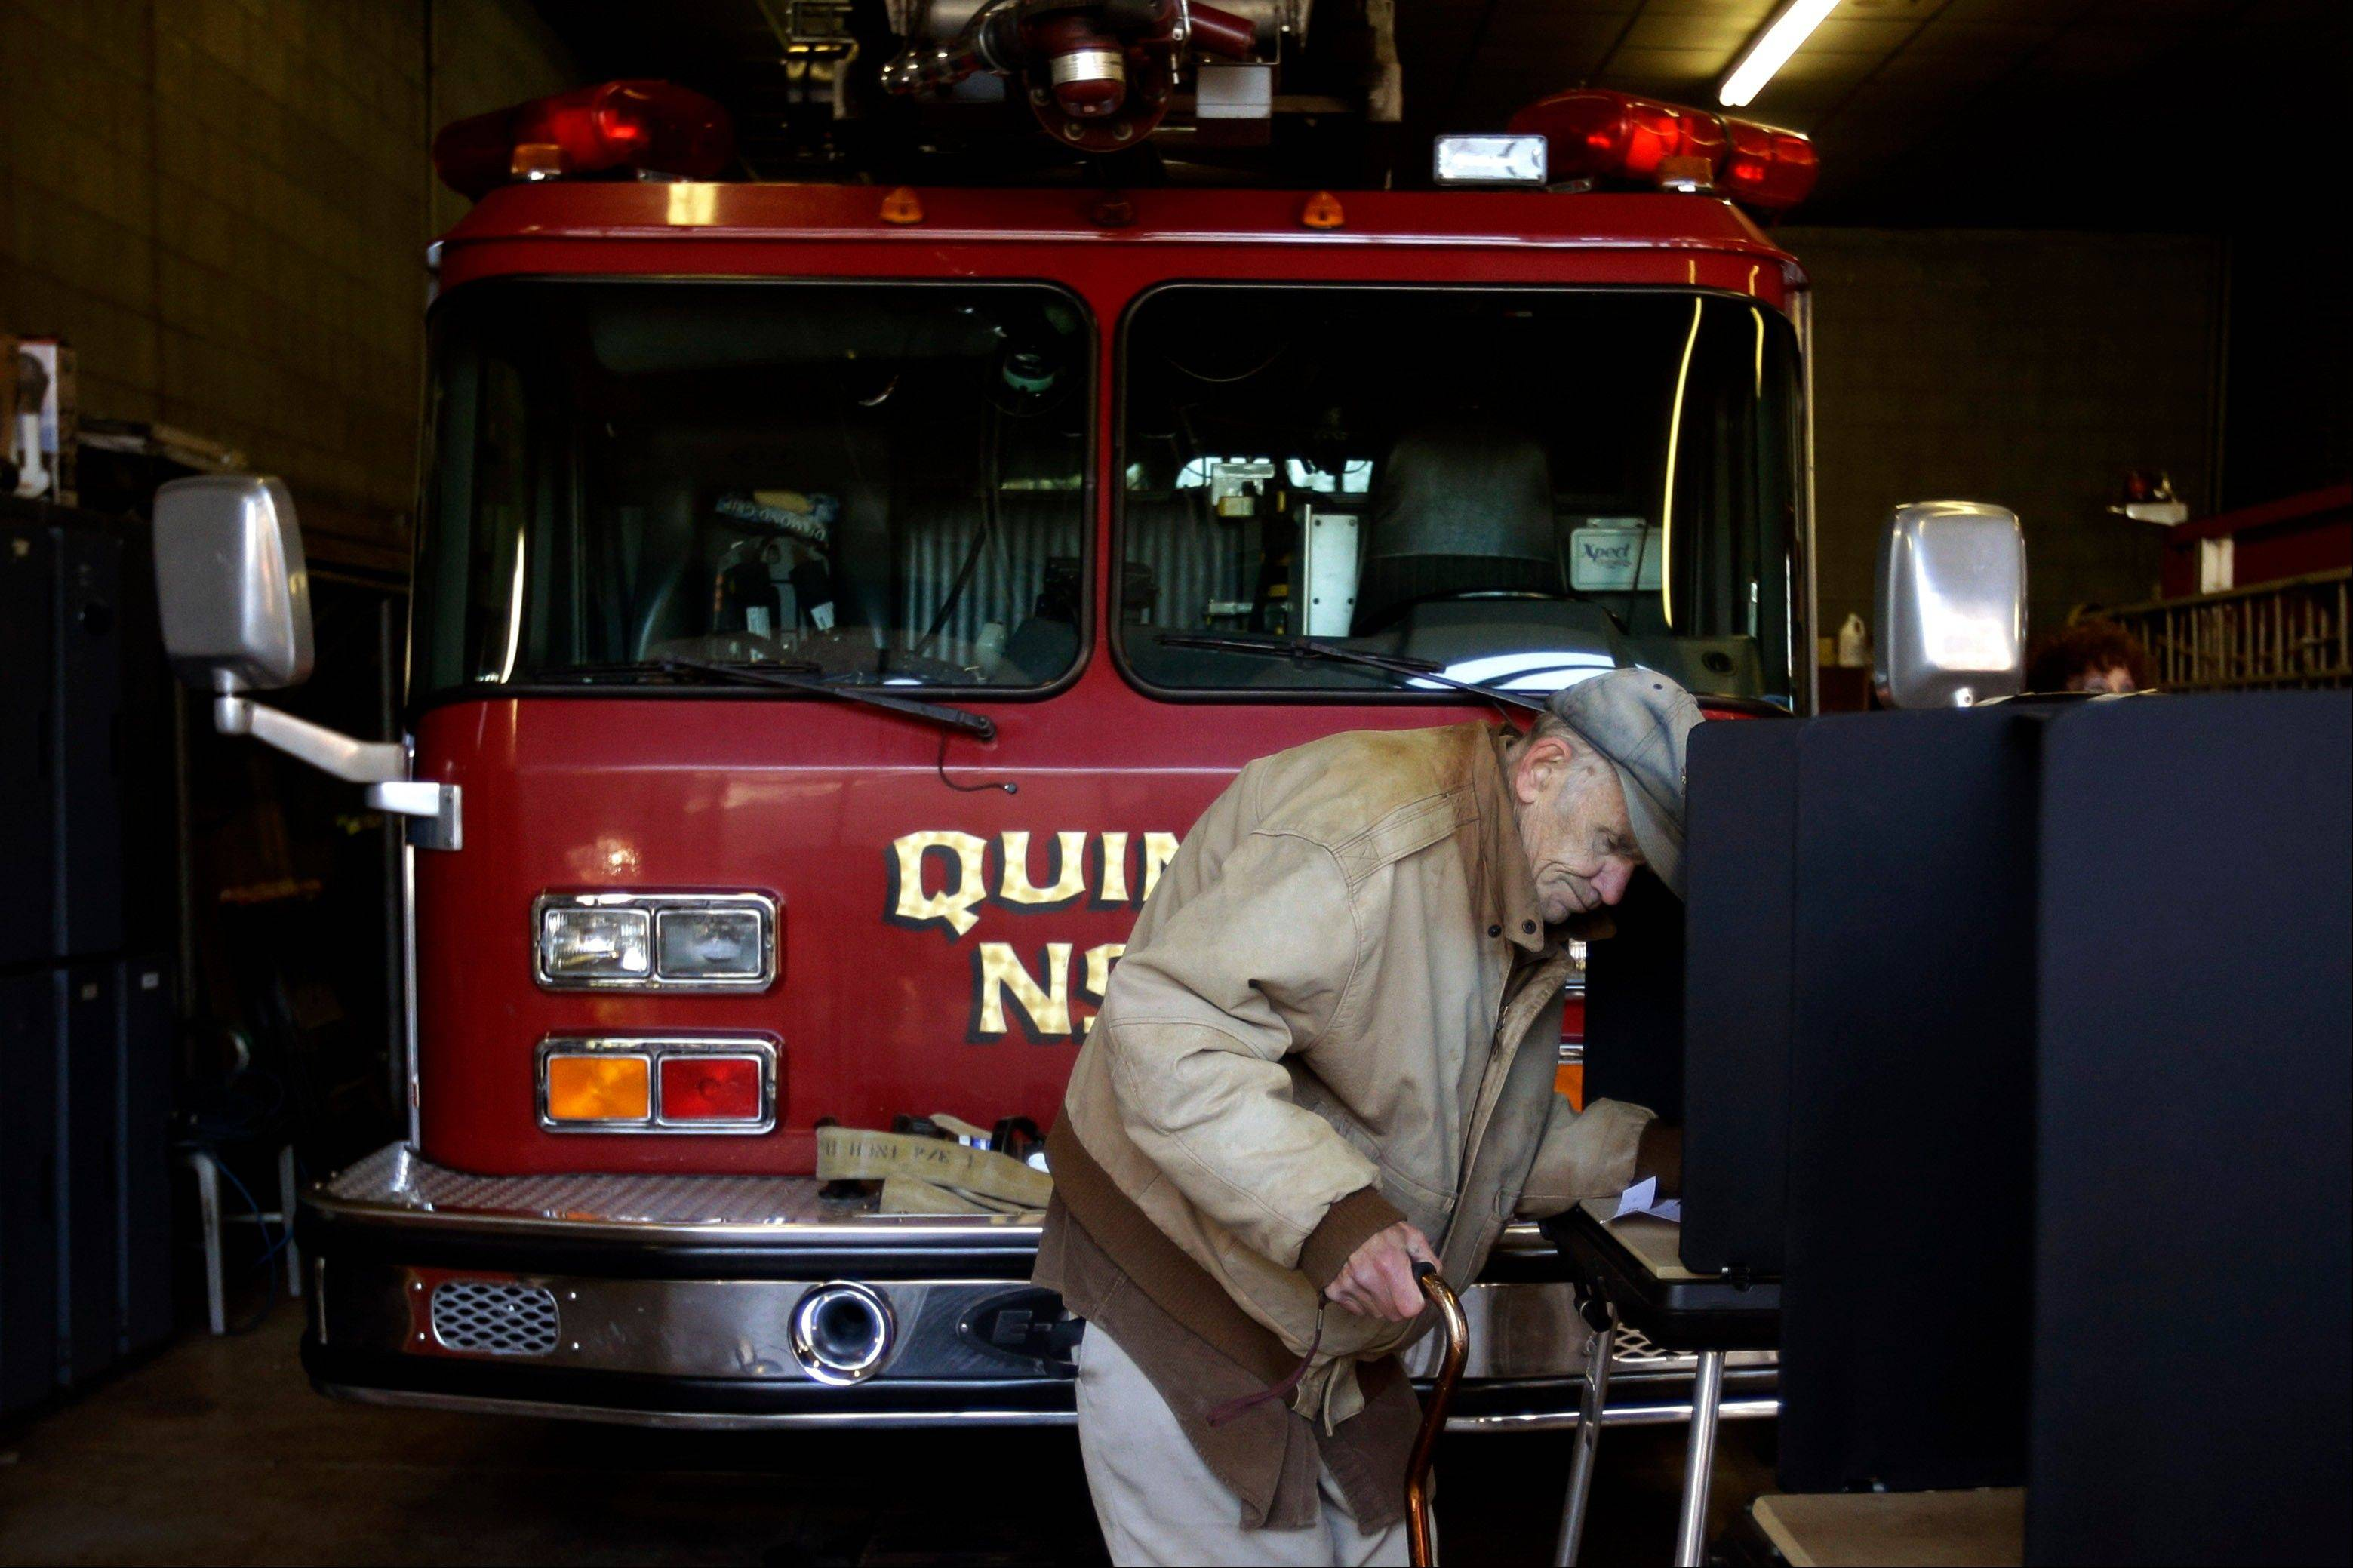 Edward Horan, of Scranton, Pa., casts his vote at a polling place inside a fire station, Tuesday, Nov. 6, 2012, in Scranton, Pa.